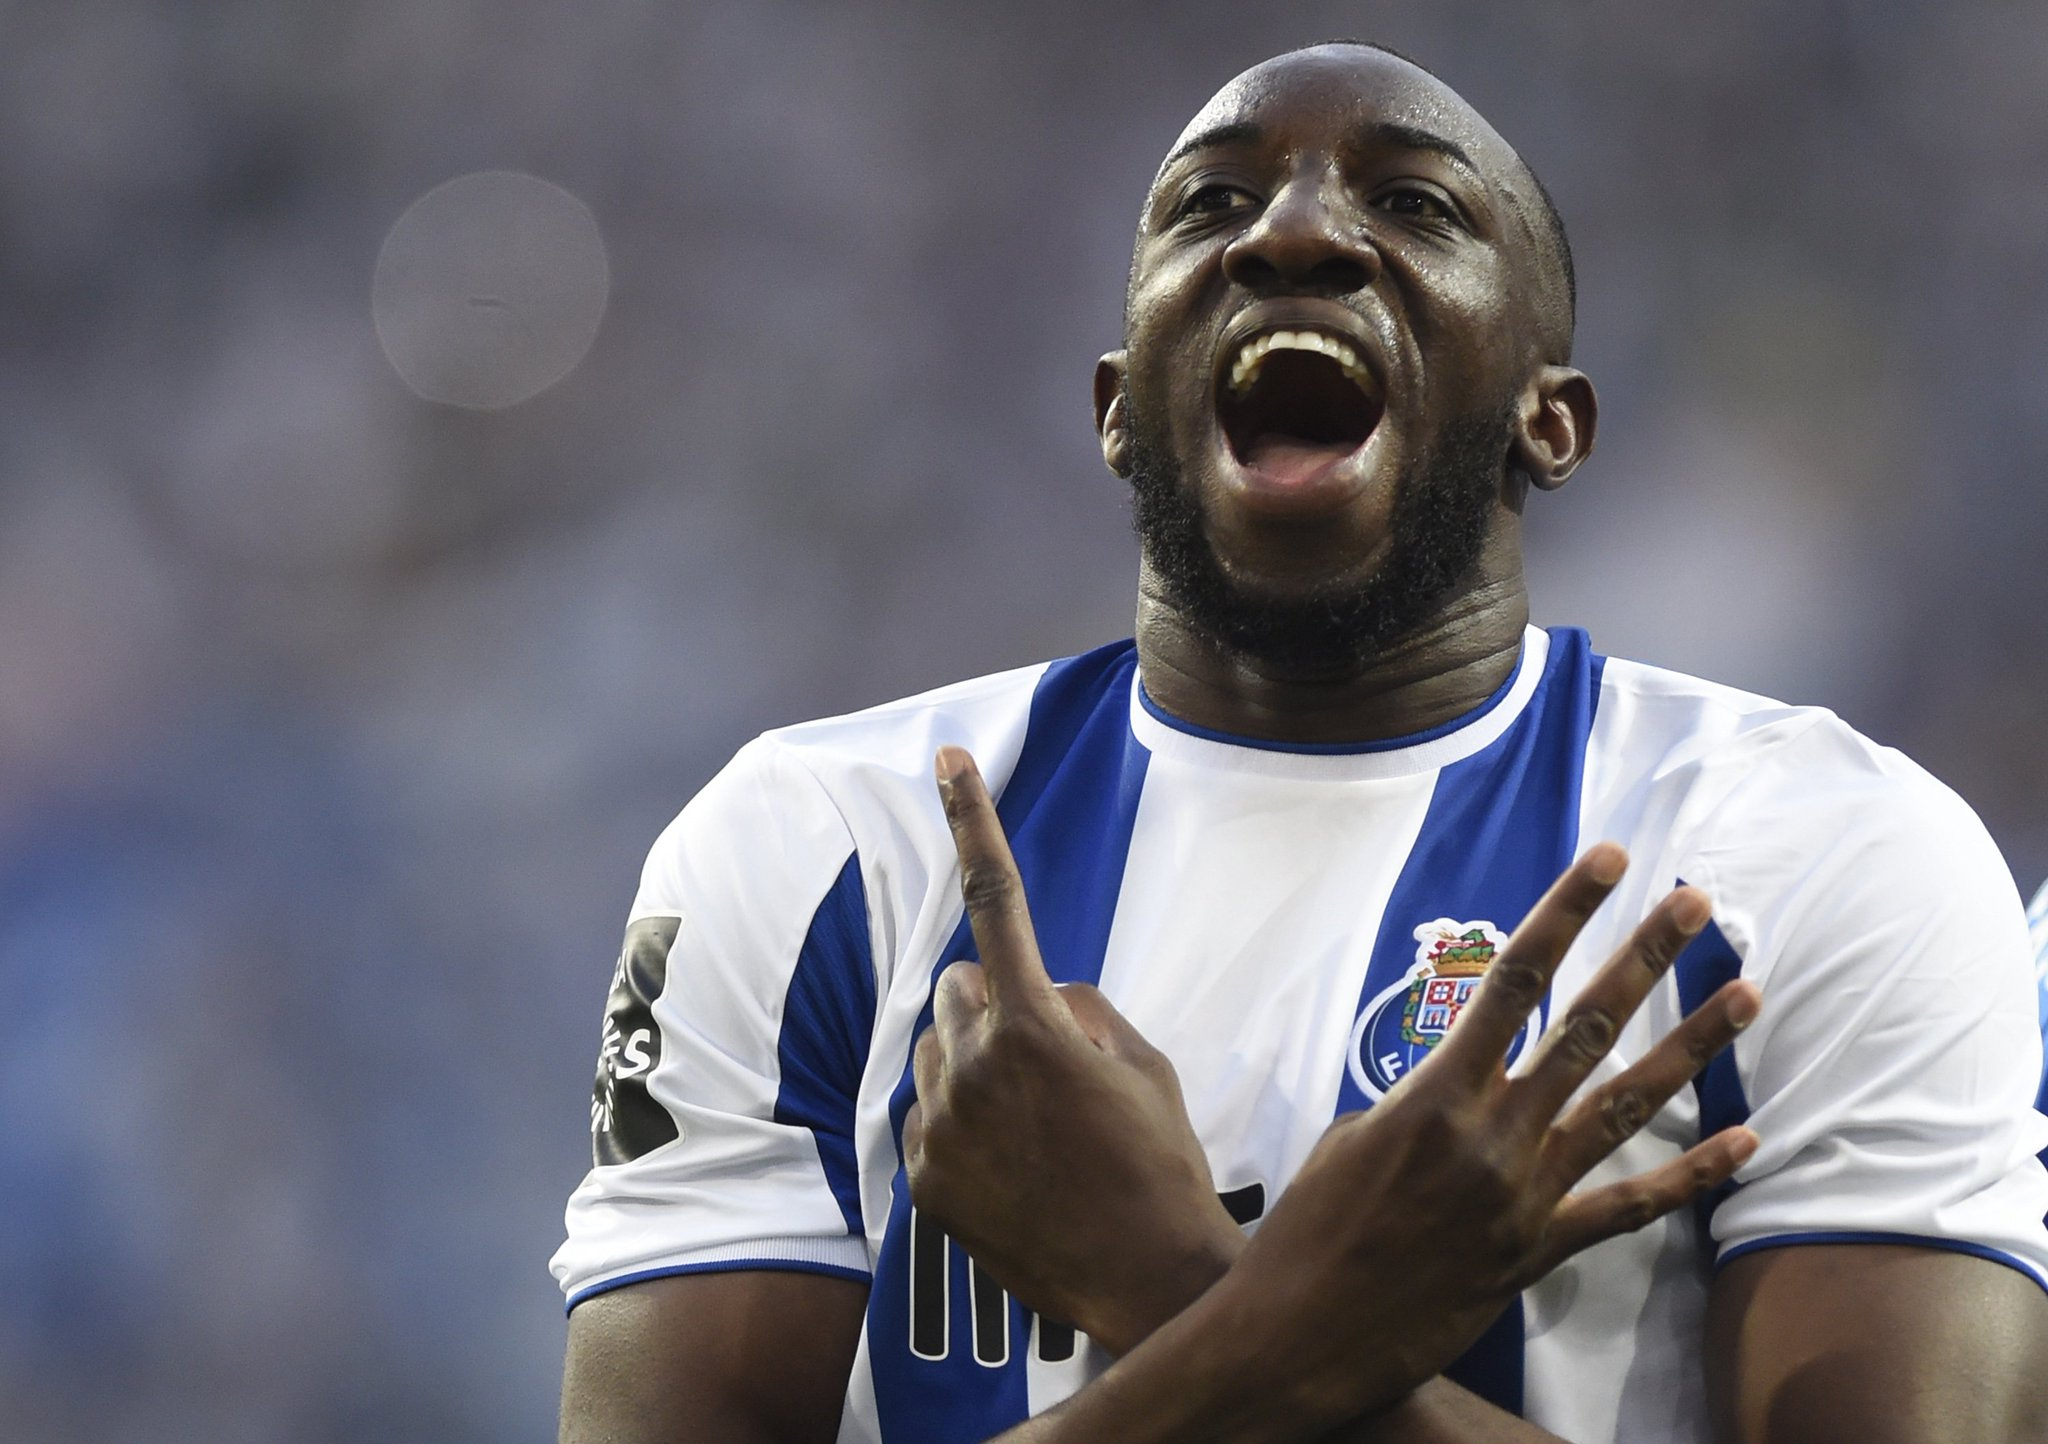 Moussa Marega secures Porto a 1-0 friendly defeat of Everton. ��  The Dragons' danger man in the #UCL? https://t.co/vOEoC68omo